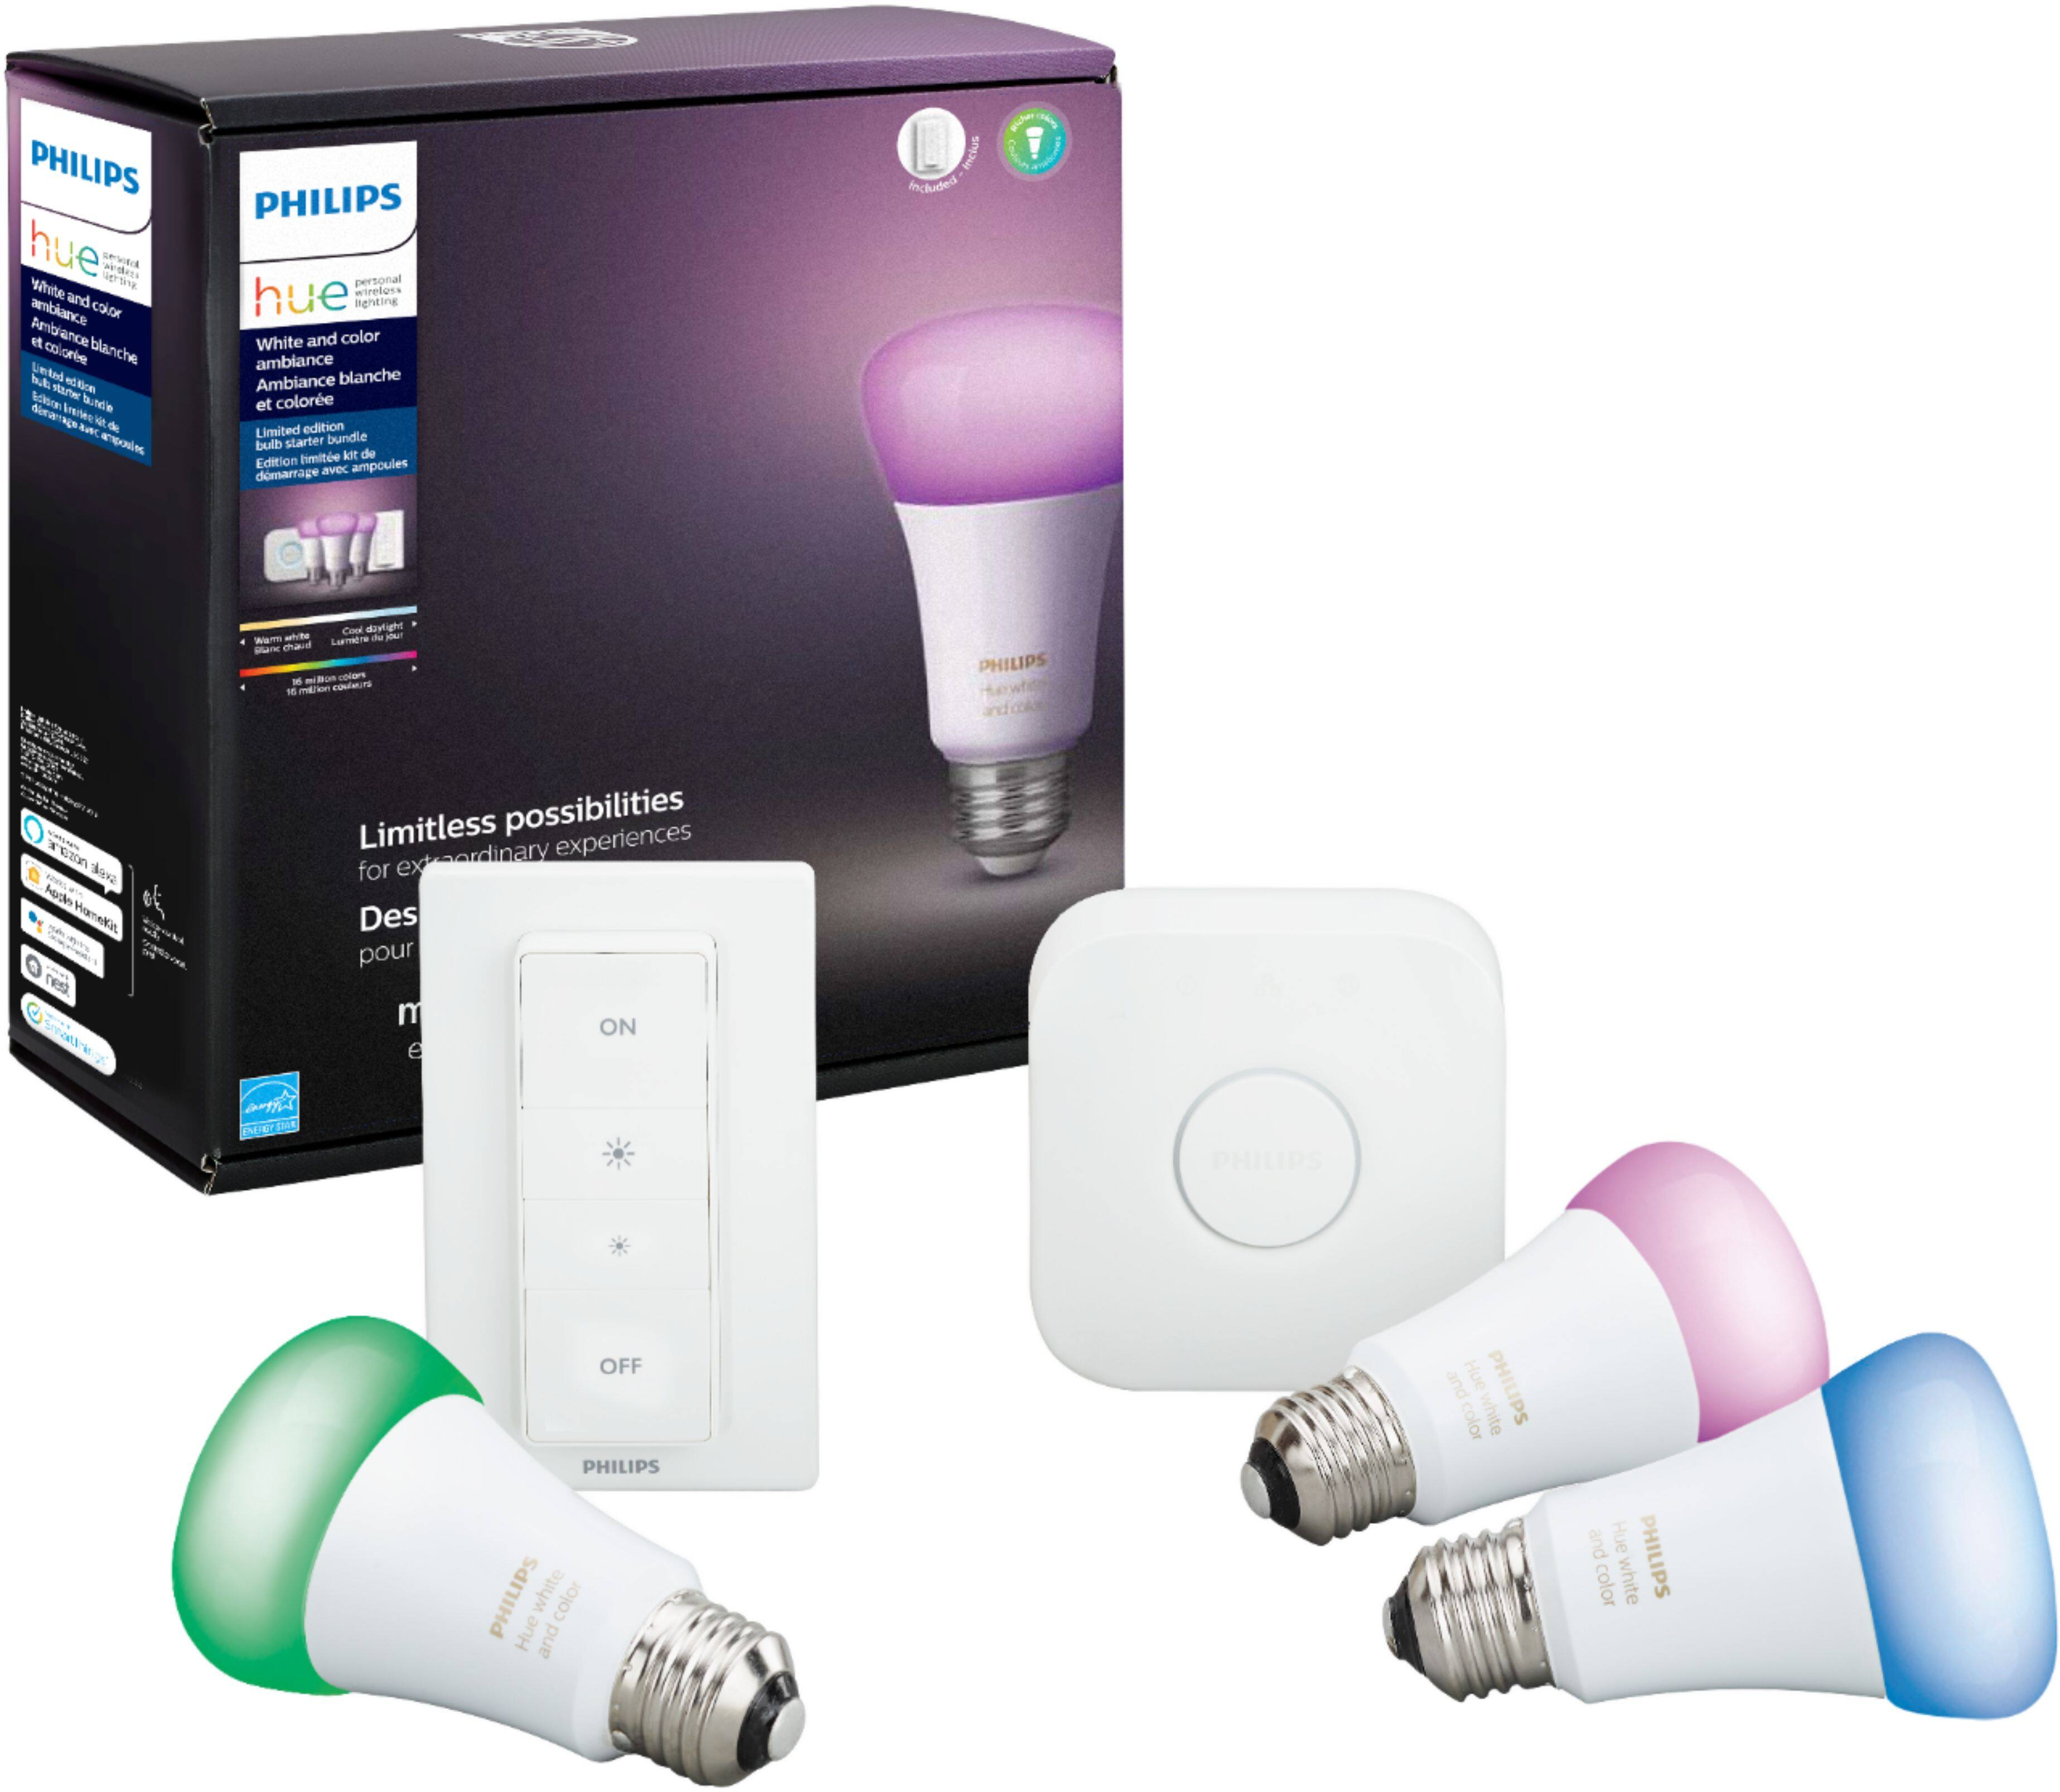 Philips Hue White & Color Ambiance LED Starter Kit - $60 off at Best Buy $129.99